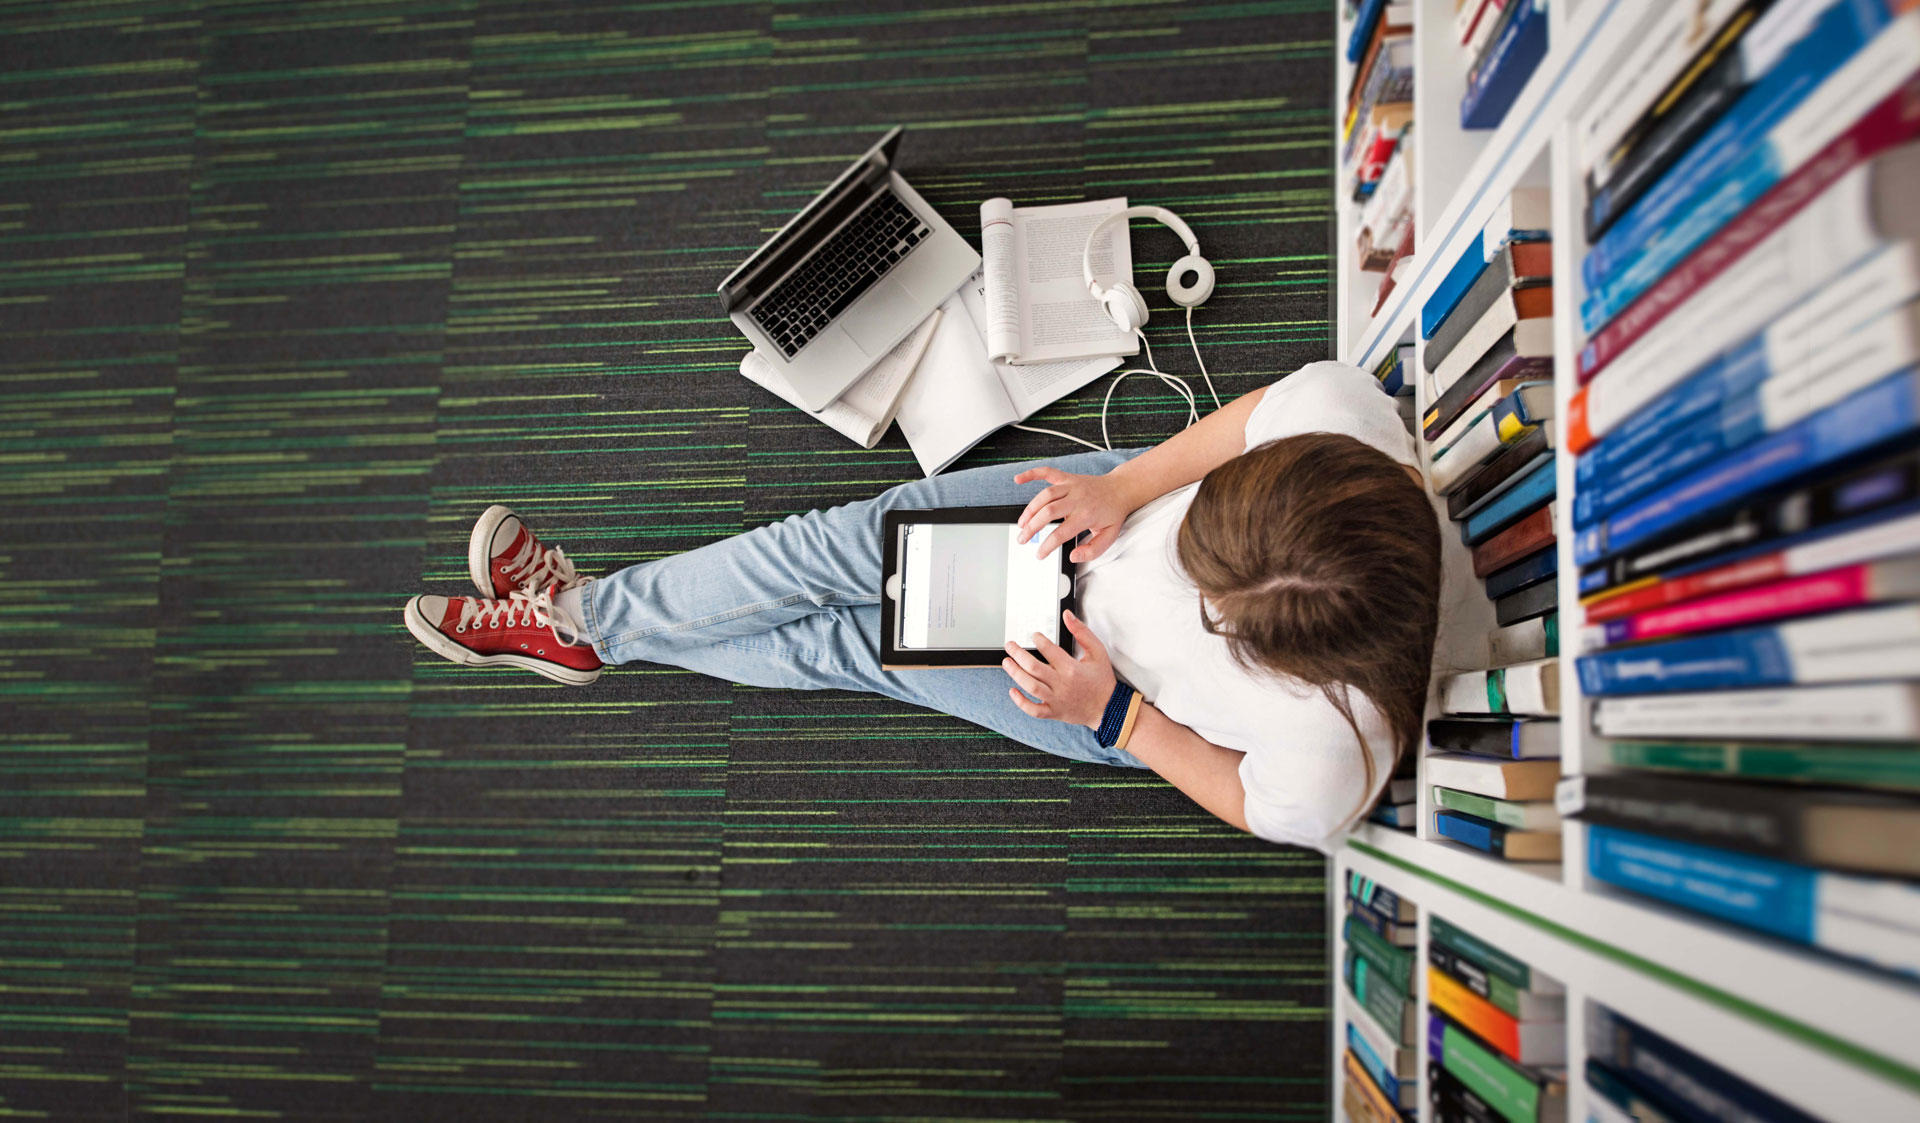 Image of a person sitting on the floor and studying in the library.